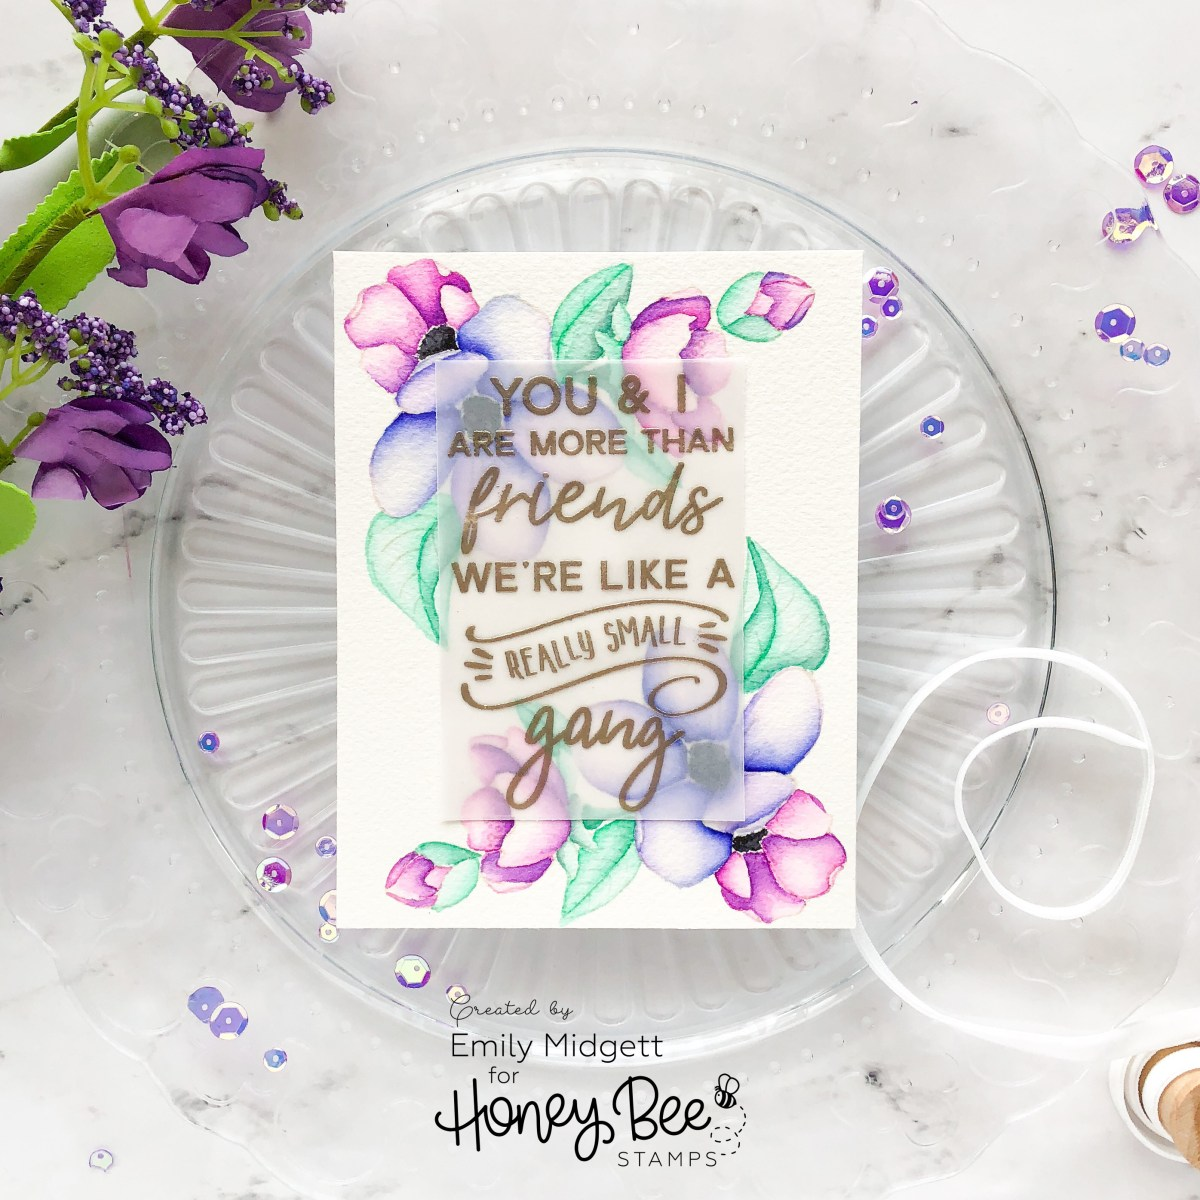 Honey Bee Stamps Birthday Blog Hop, Day 2!